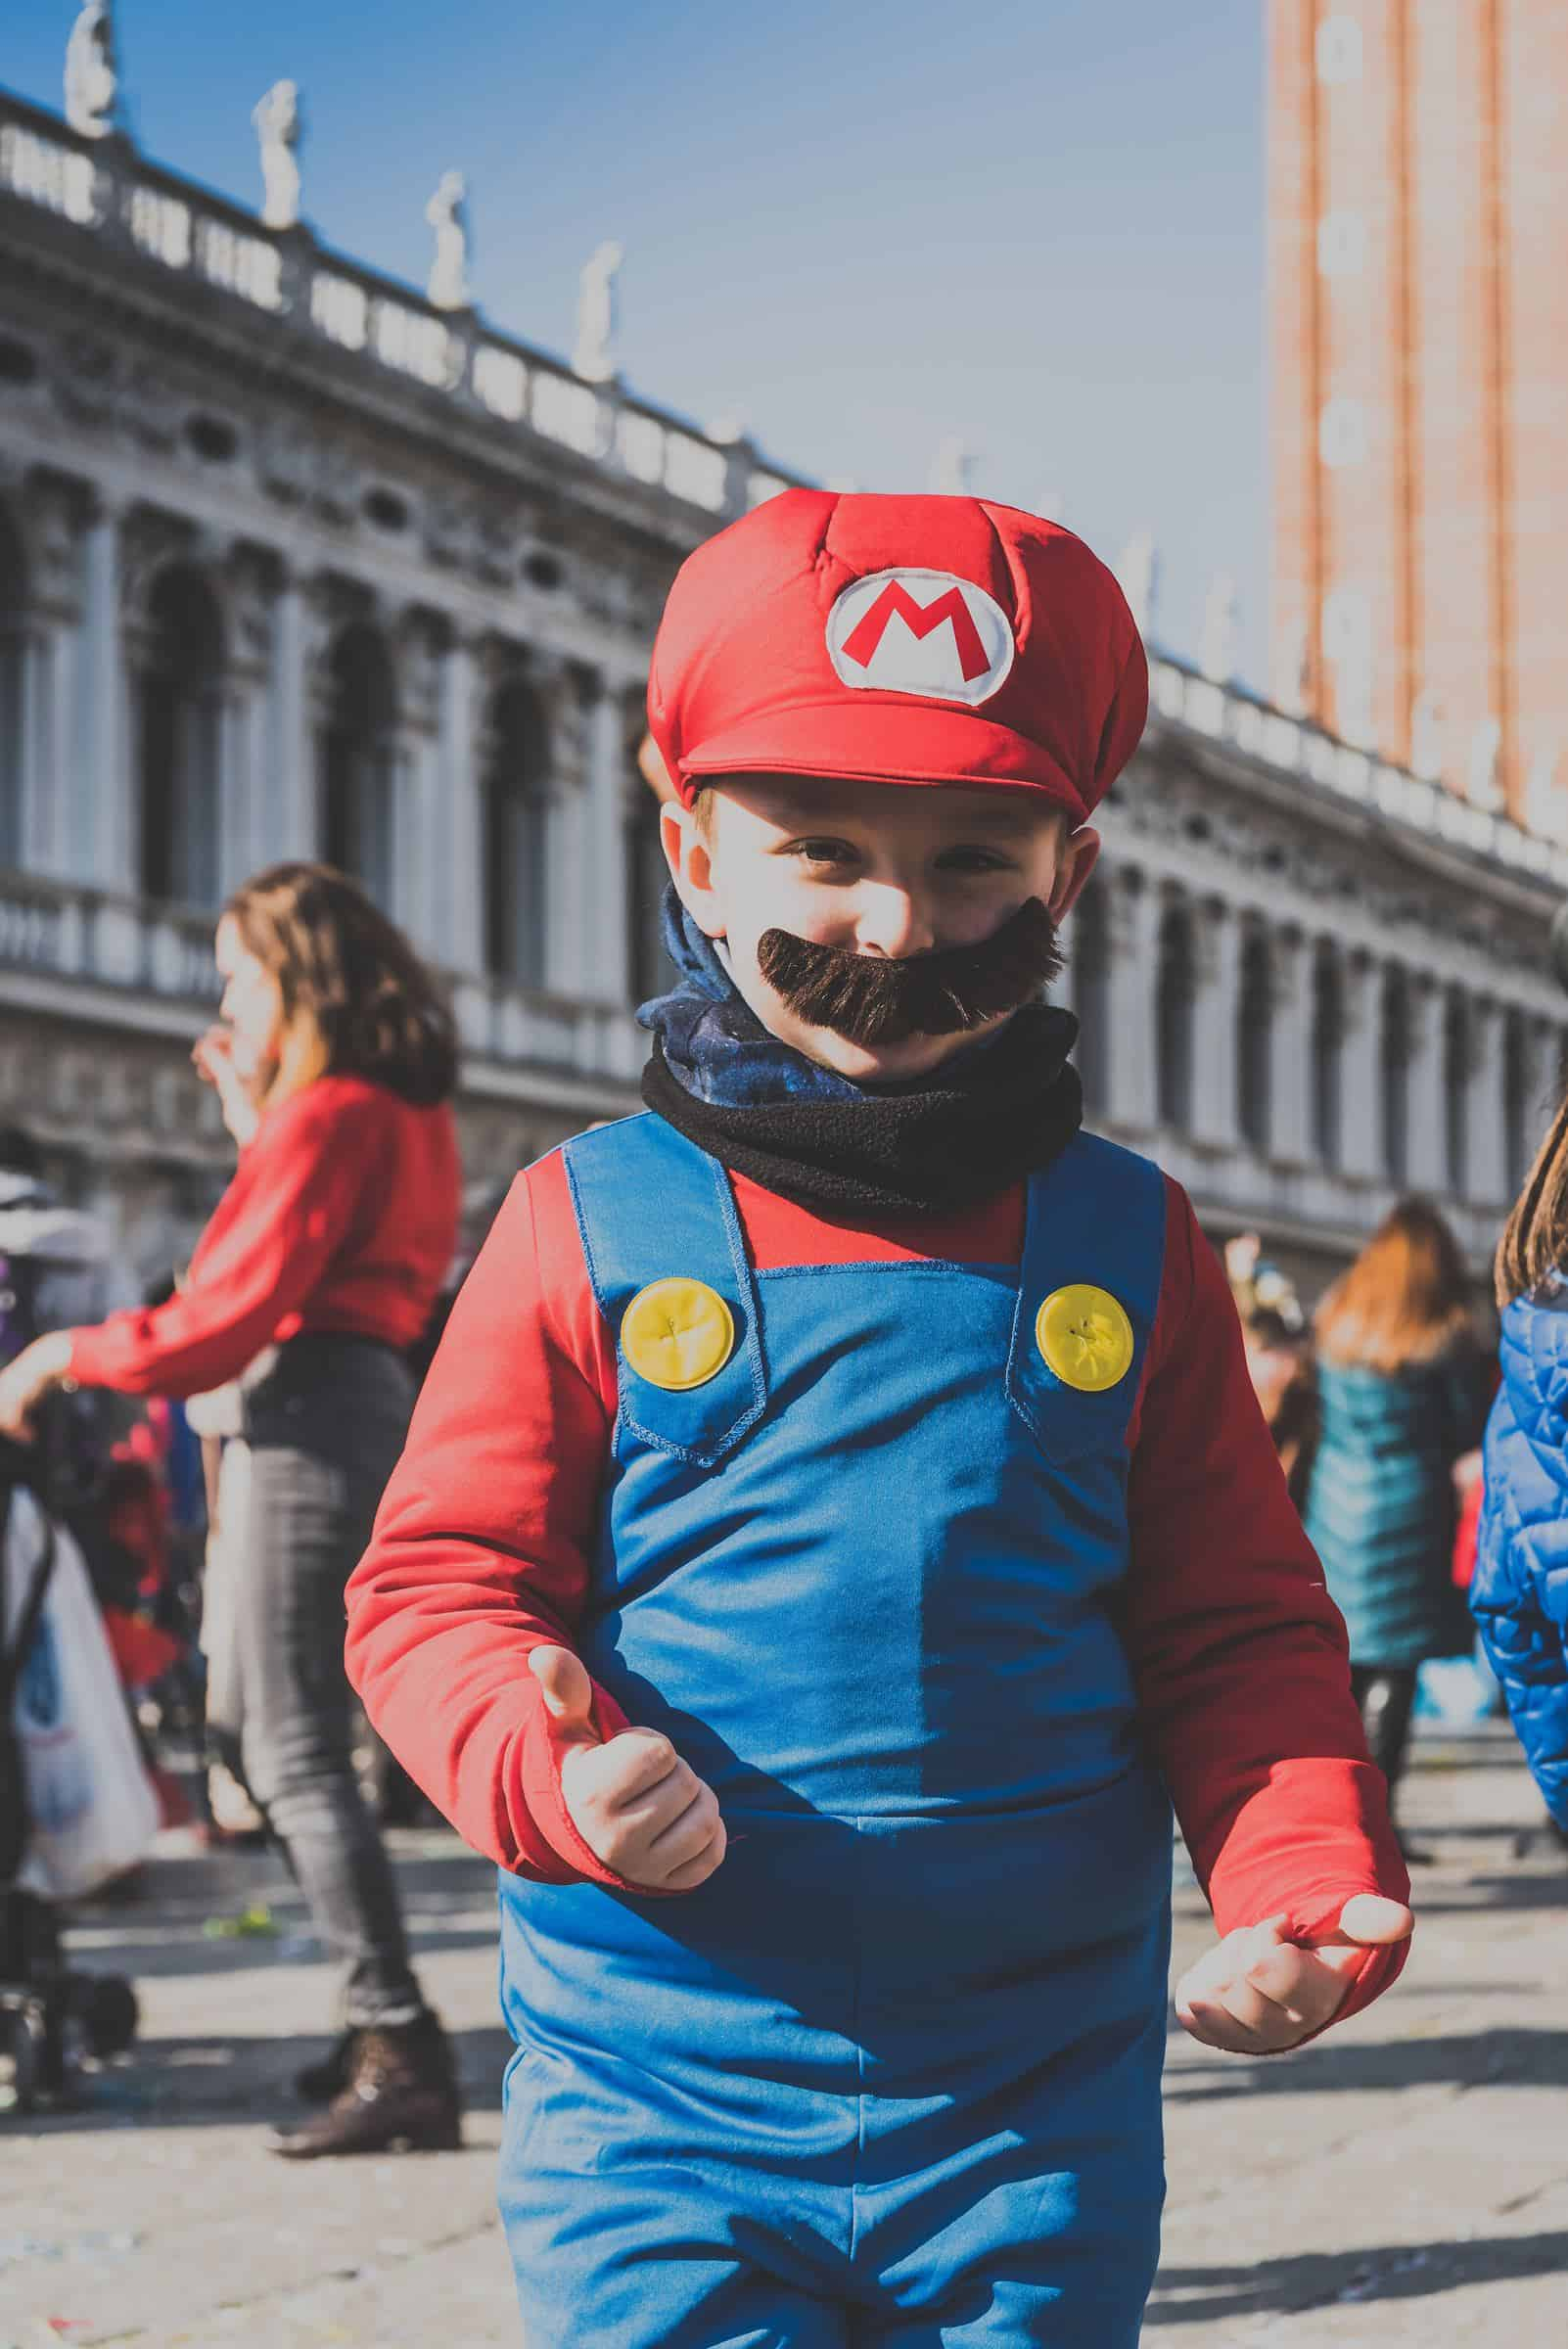 boy wearing Super Mario costume